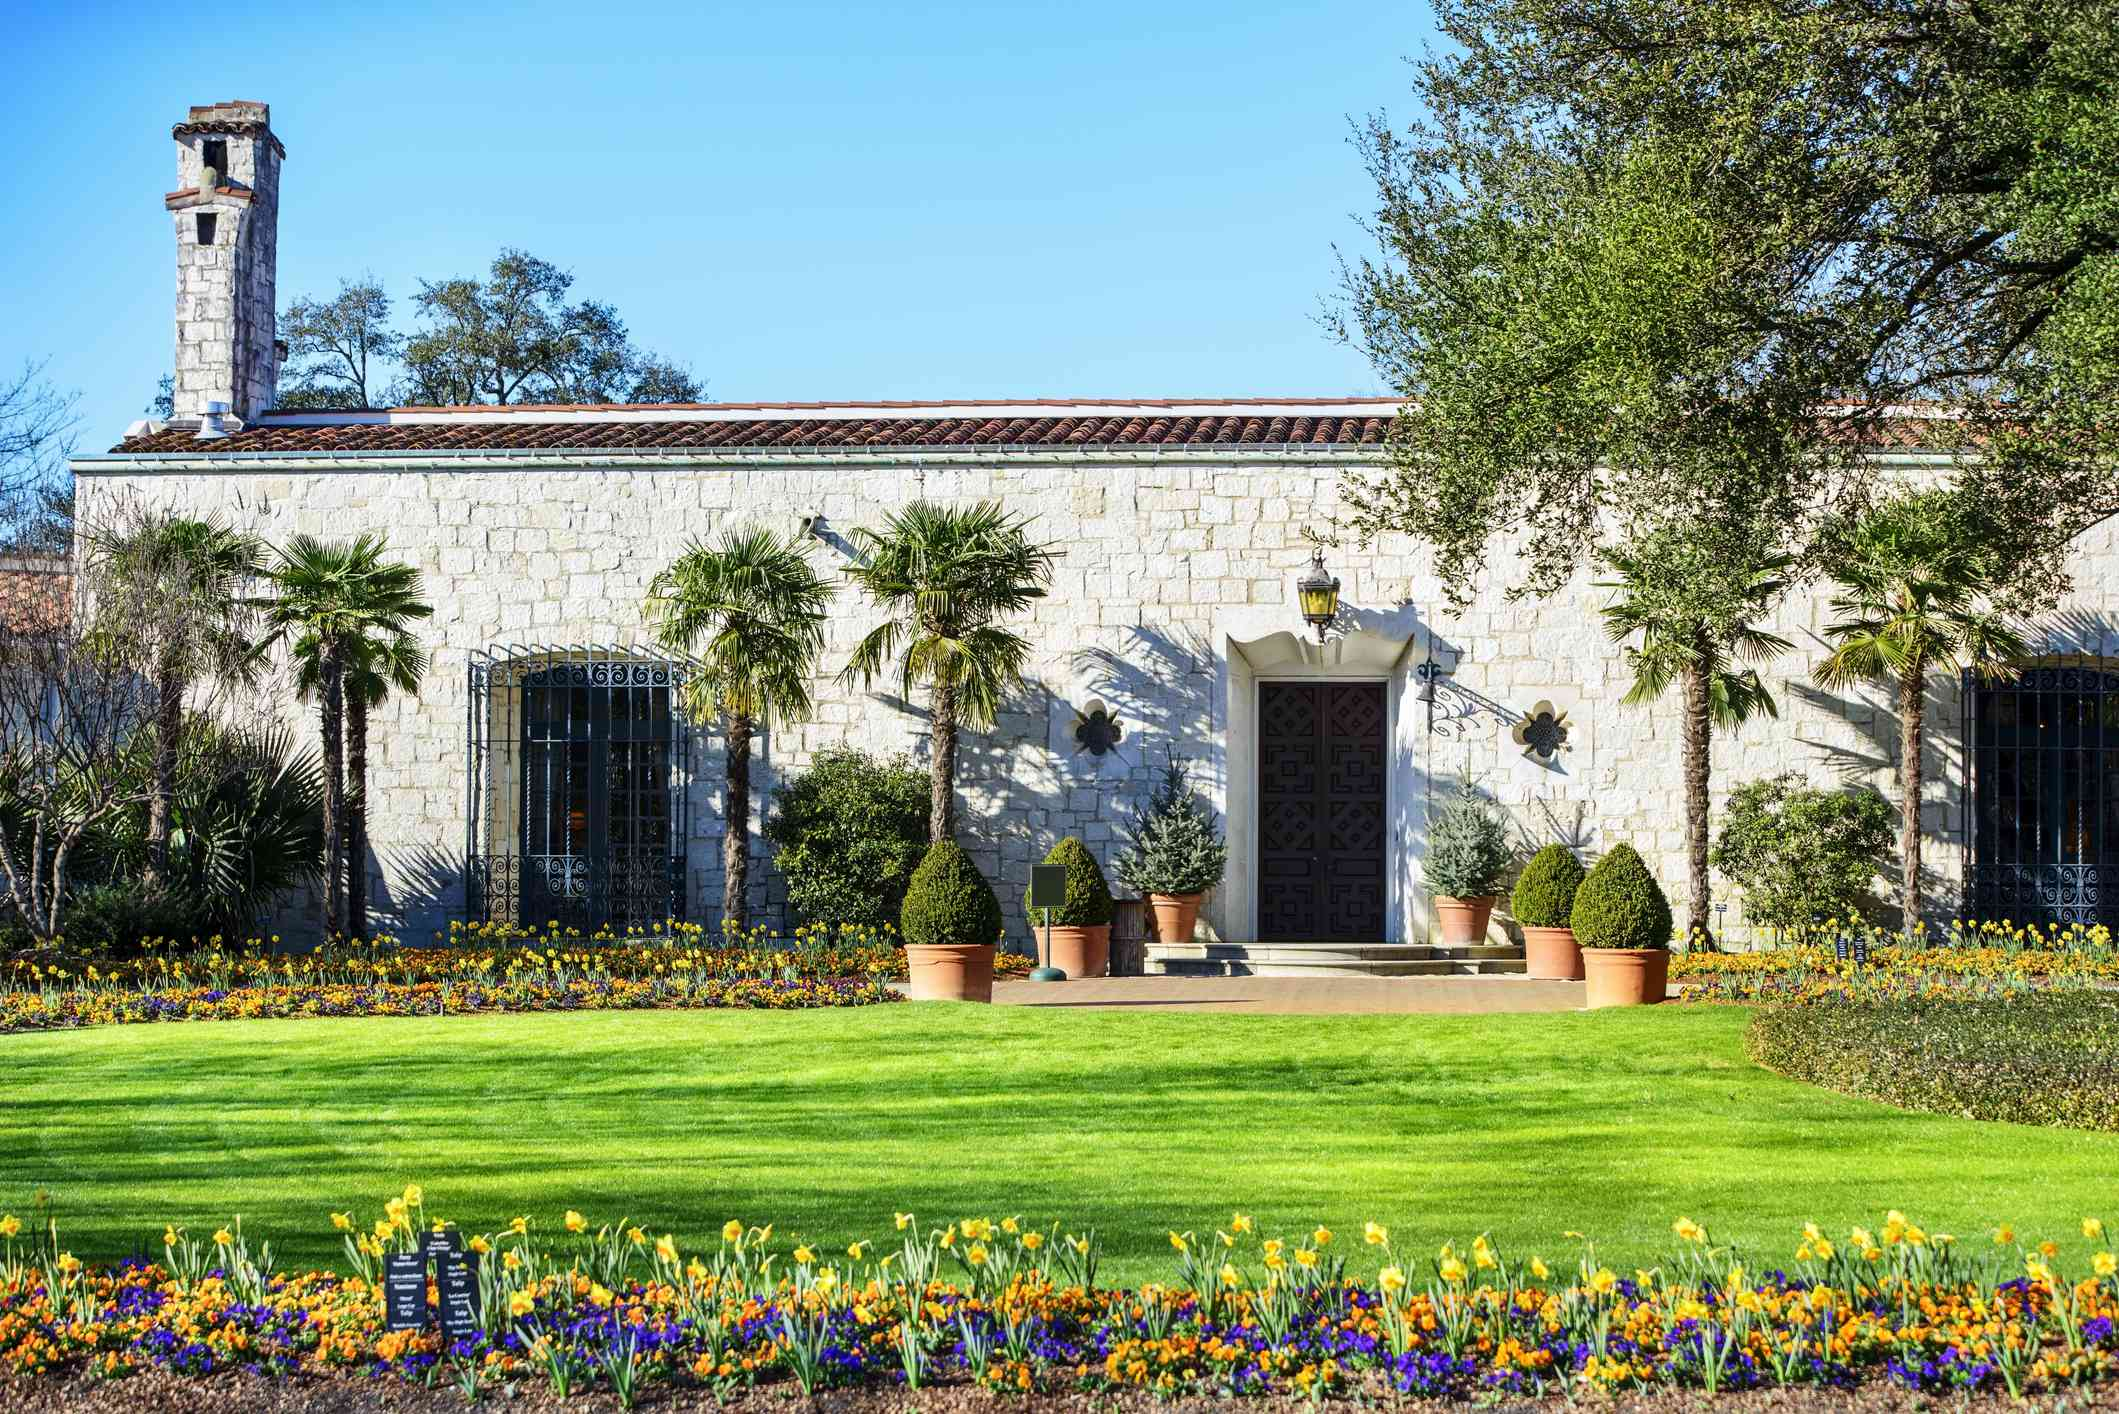 Stone building with palm trees and colorful flowers in front of it, Dallas Arboretum and Botanical Garden. Located in Dallas, Texas, USA.